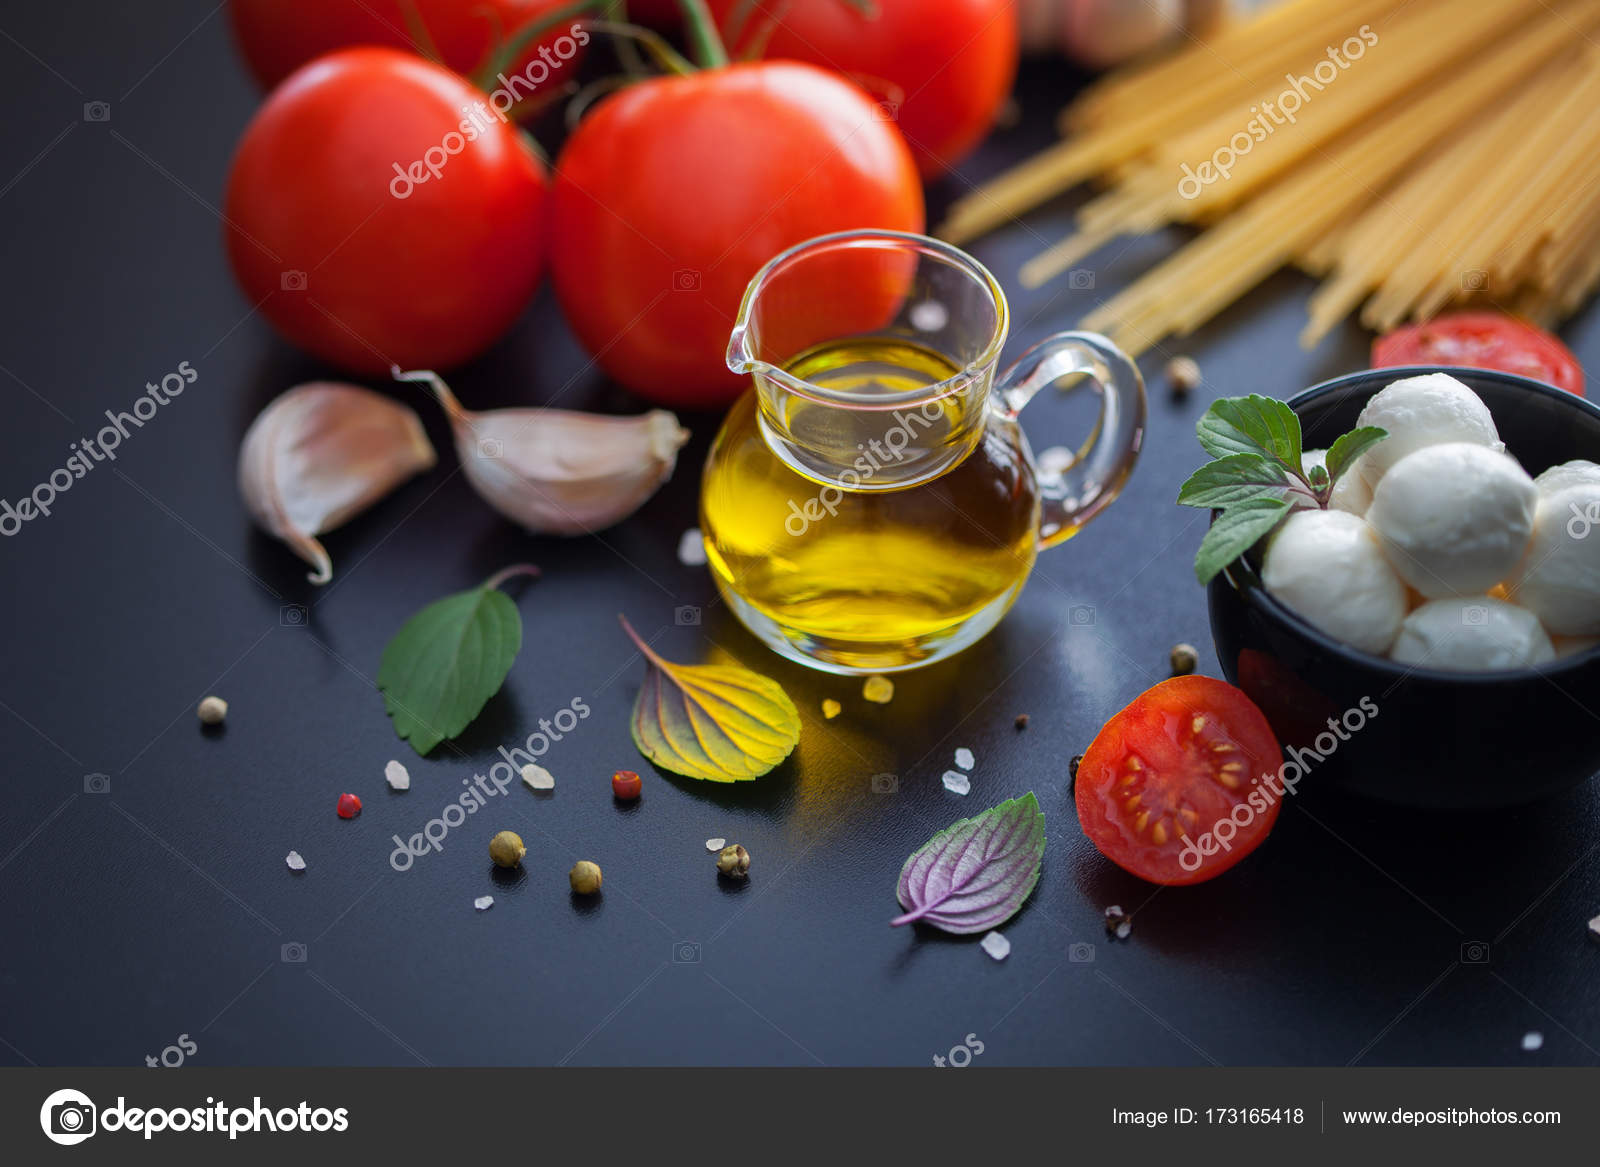 Cuisines Vial Vial With Olive Oil Stock Photo Matka Wariatka 173165418